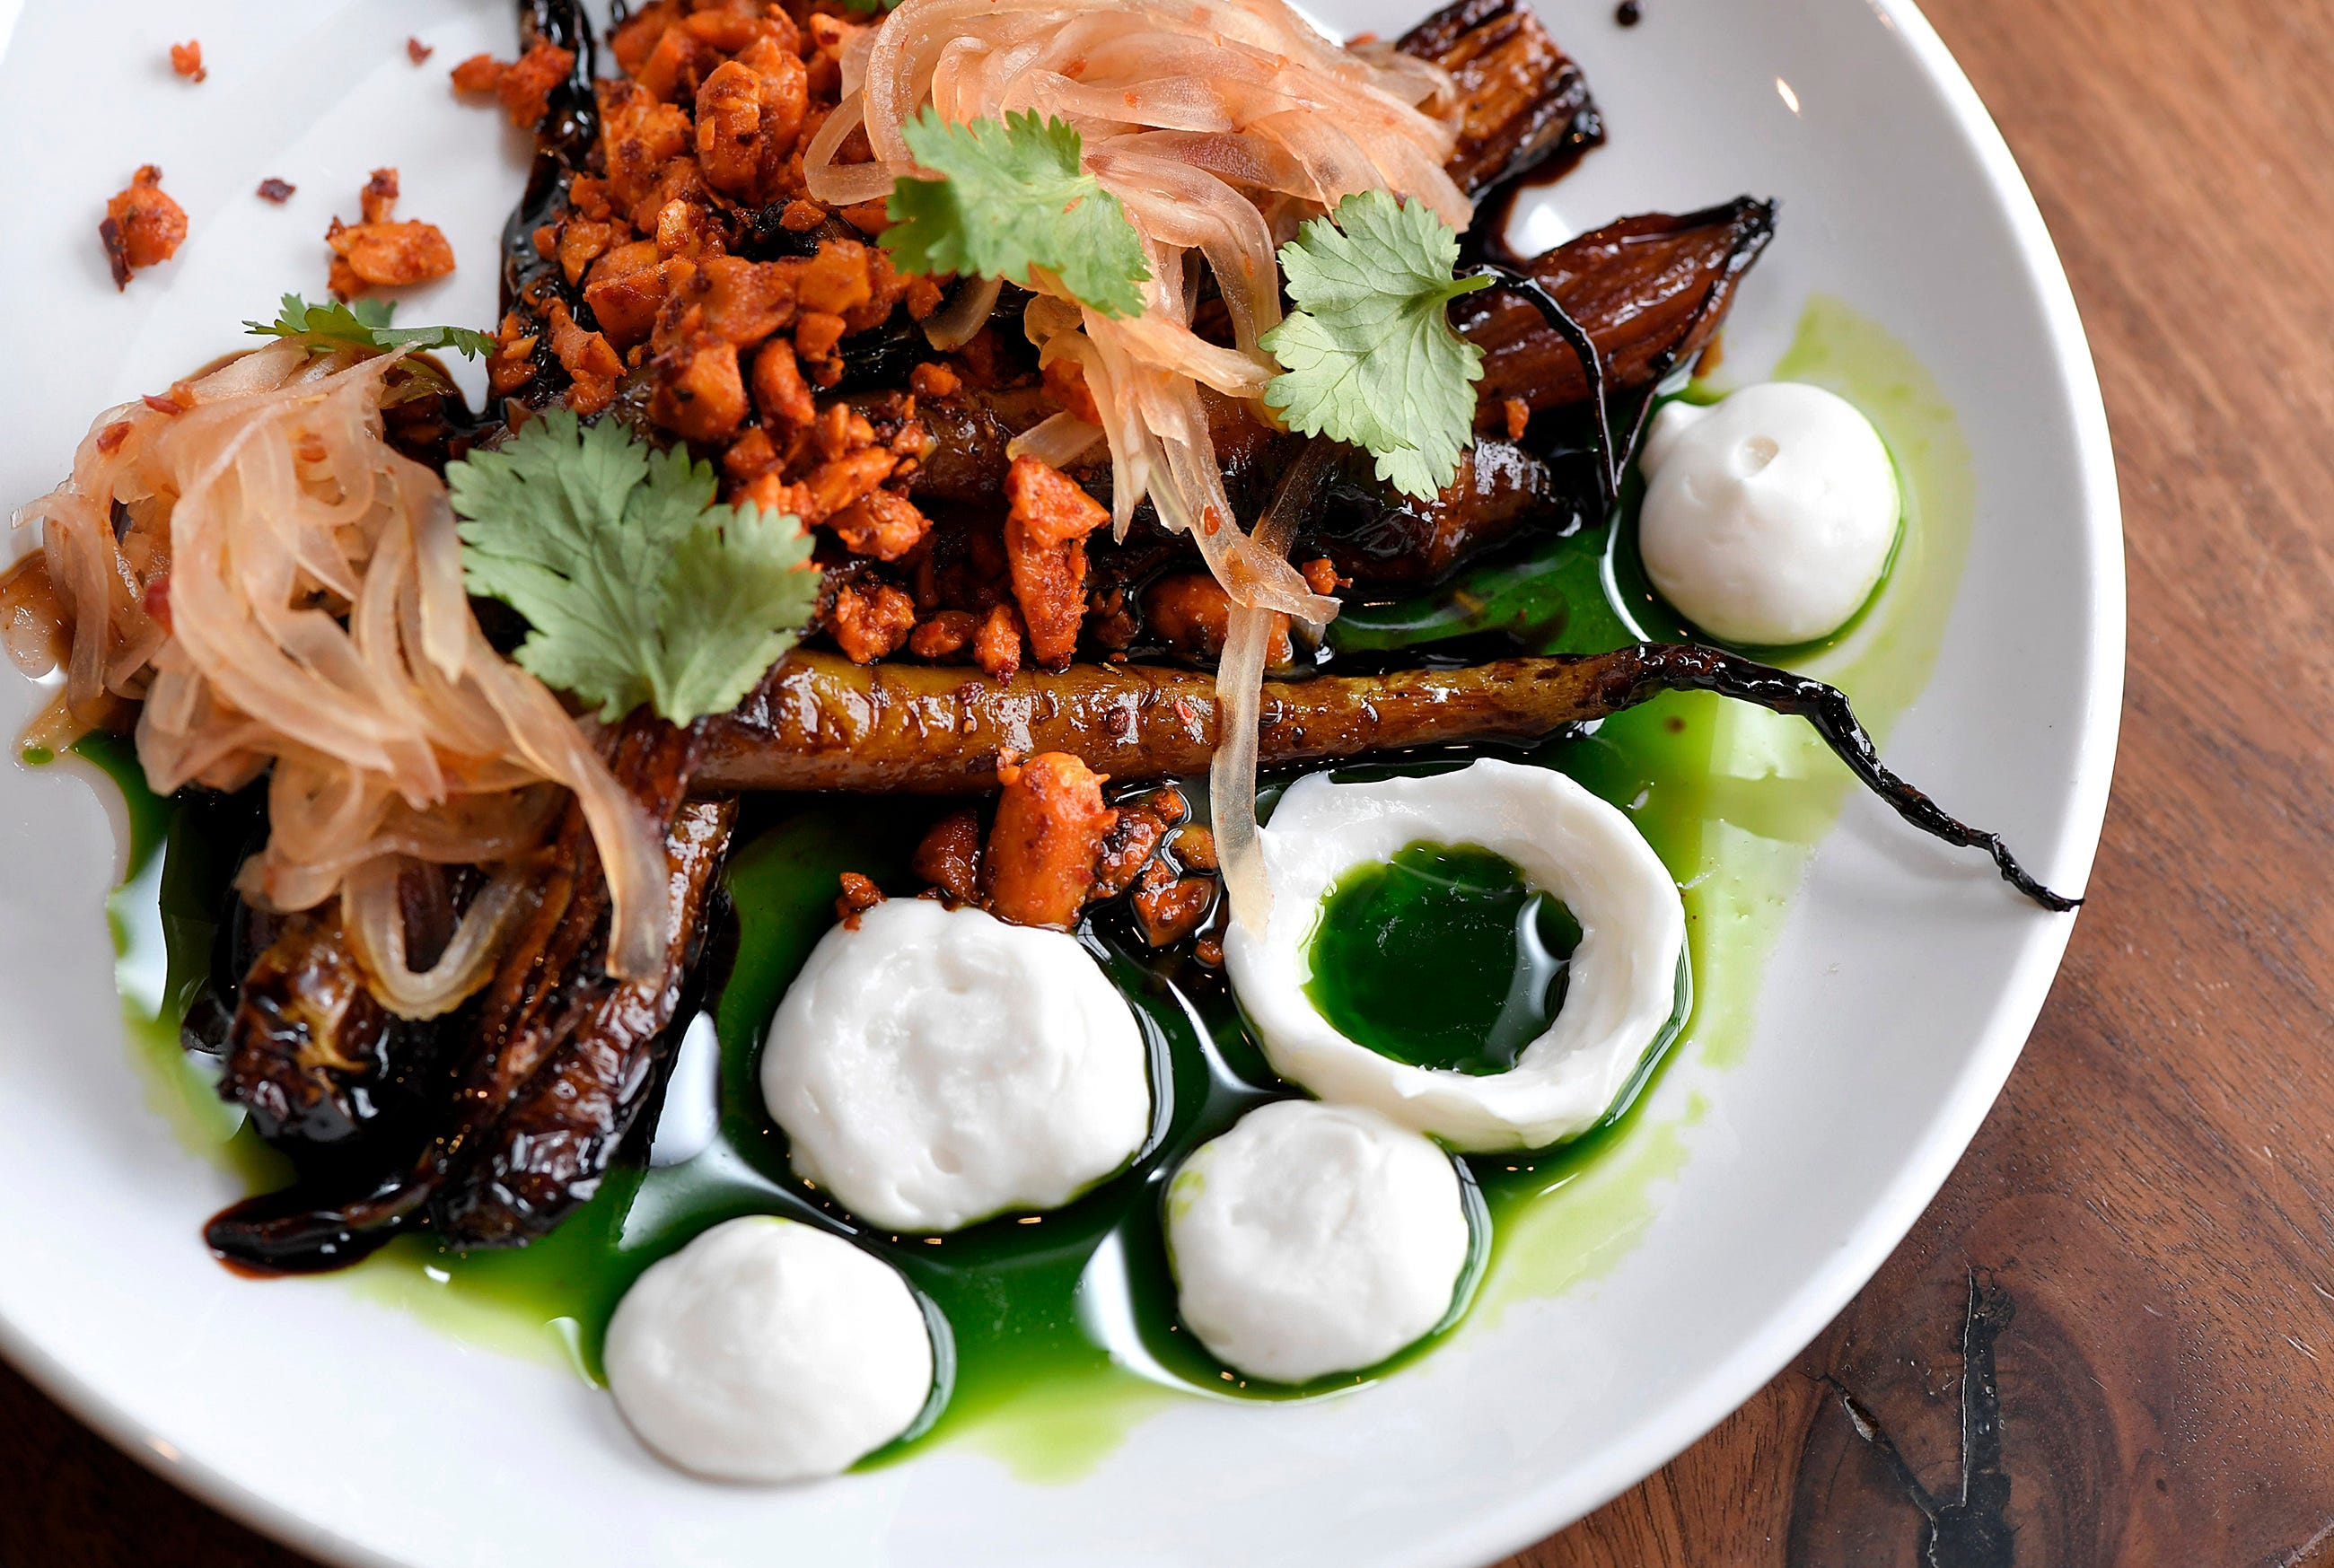 The 5 Best Restaurants For Nashville Vegetarians